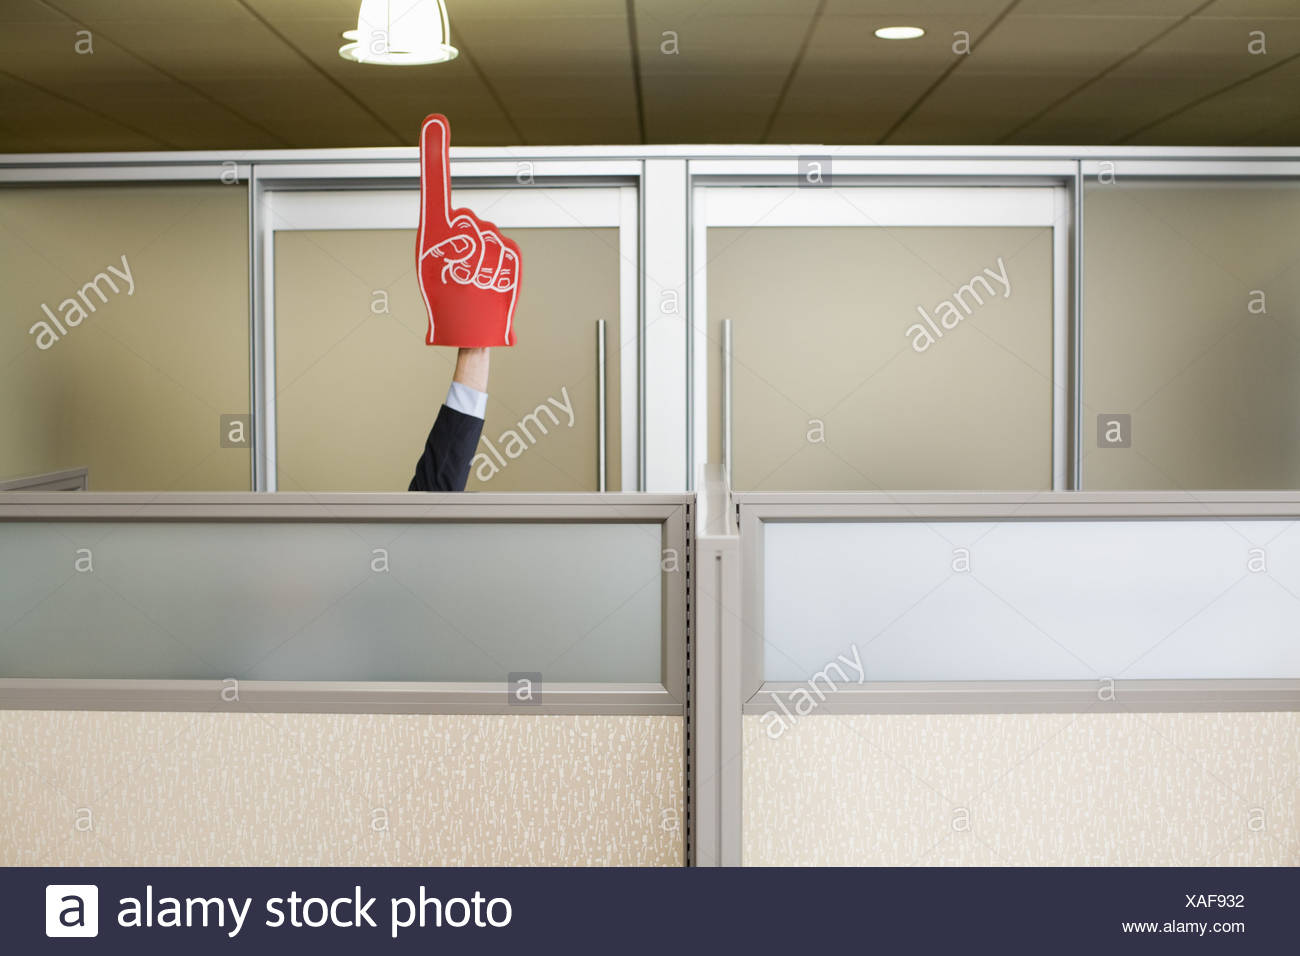 Businessman holding up sports foam finger - Stock Image